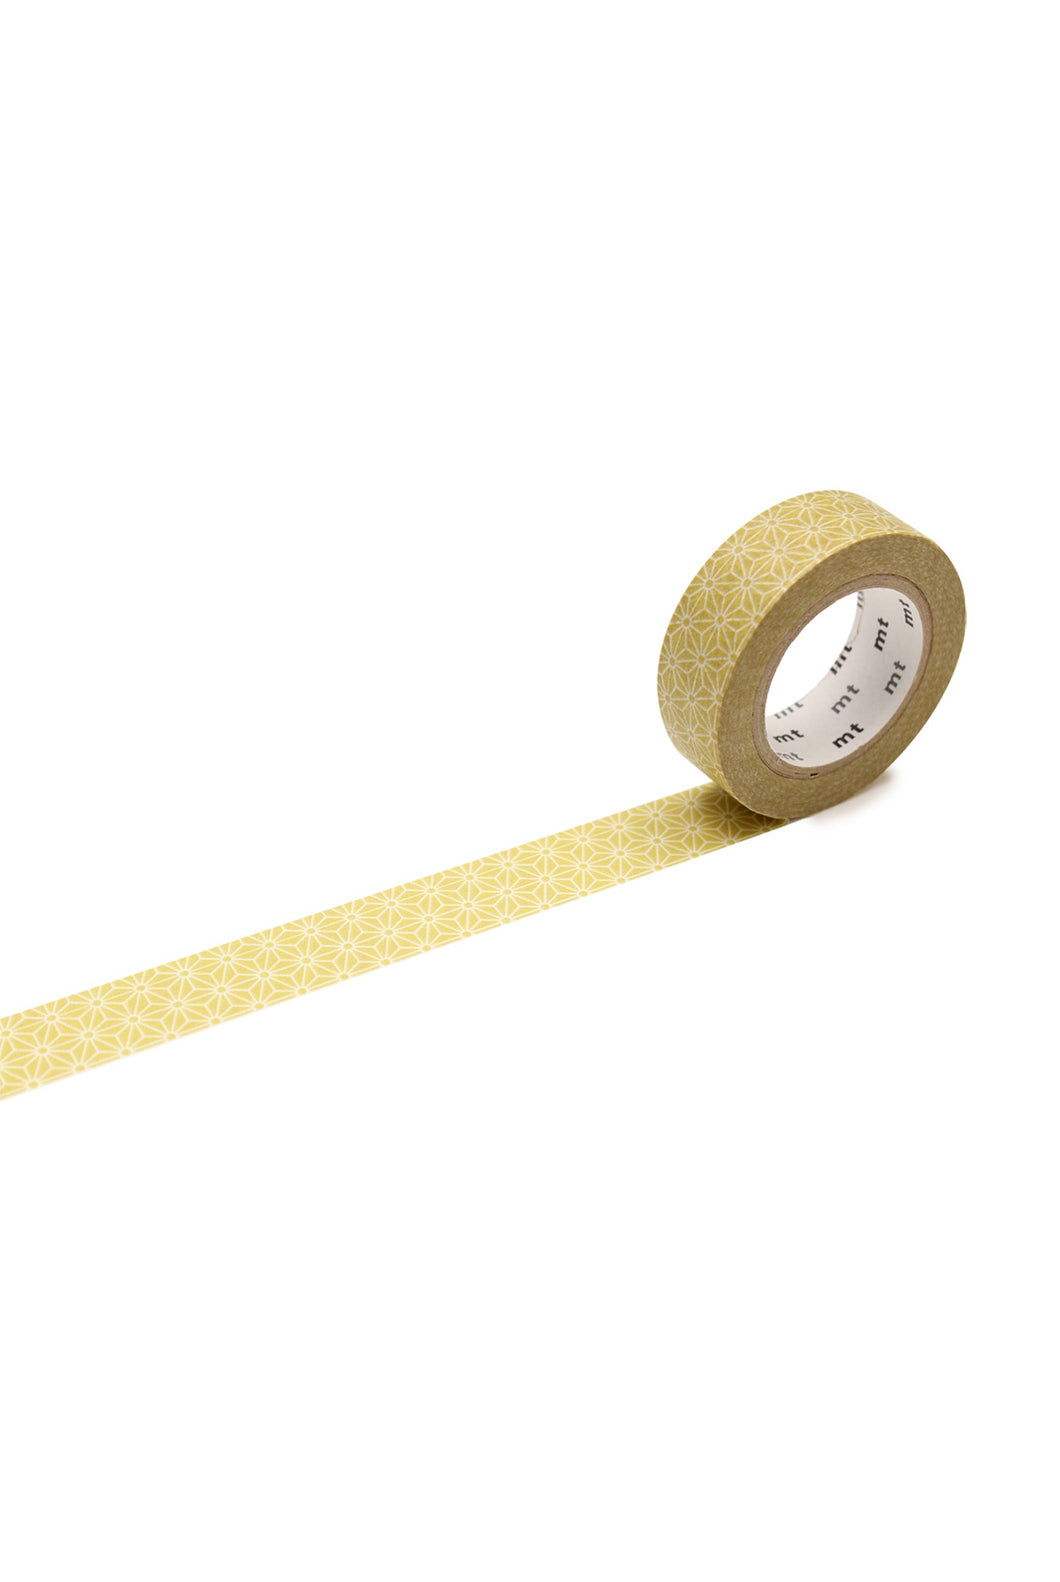 Masking Tape MT - Single Roll - Asanoha Karekusa